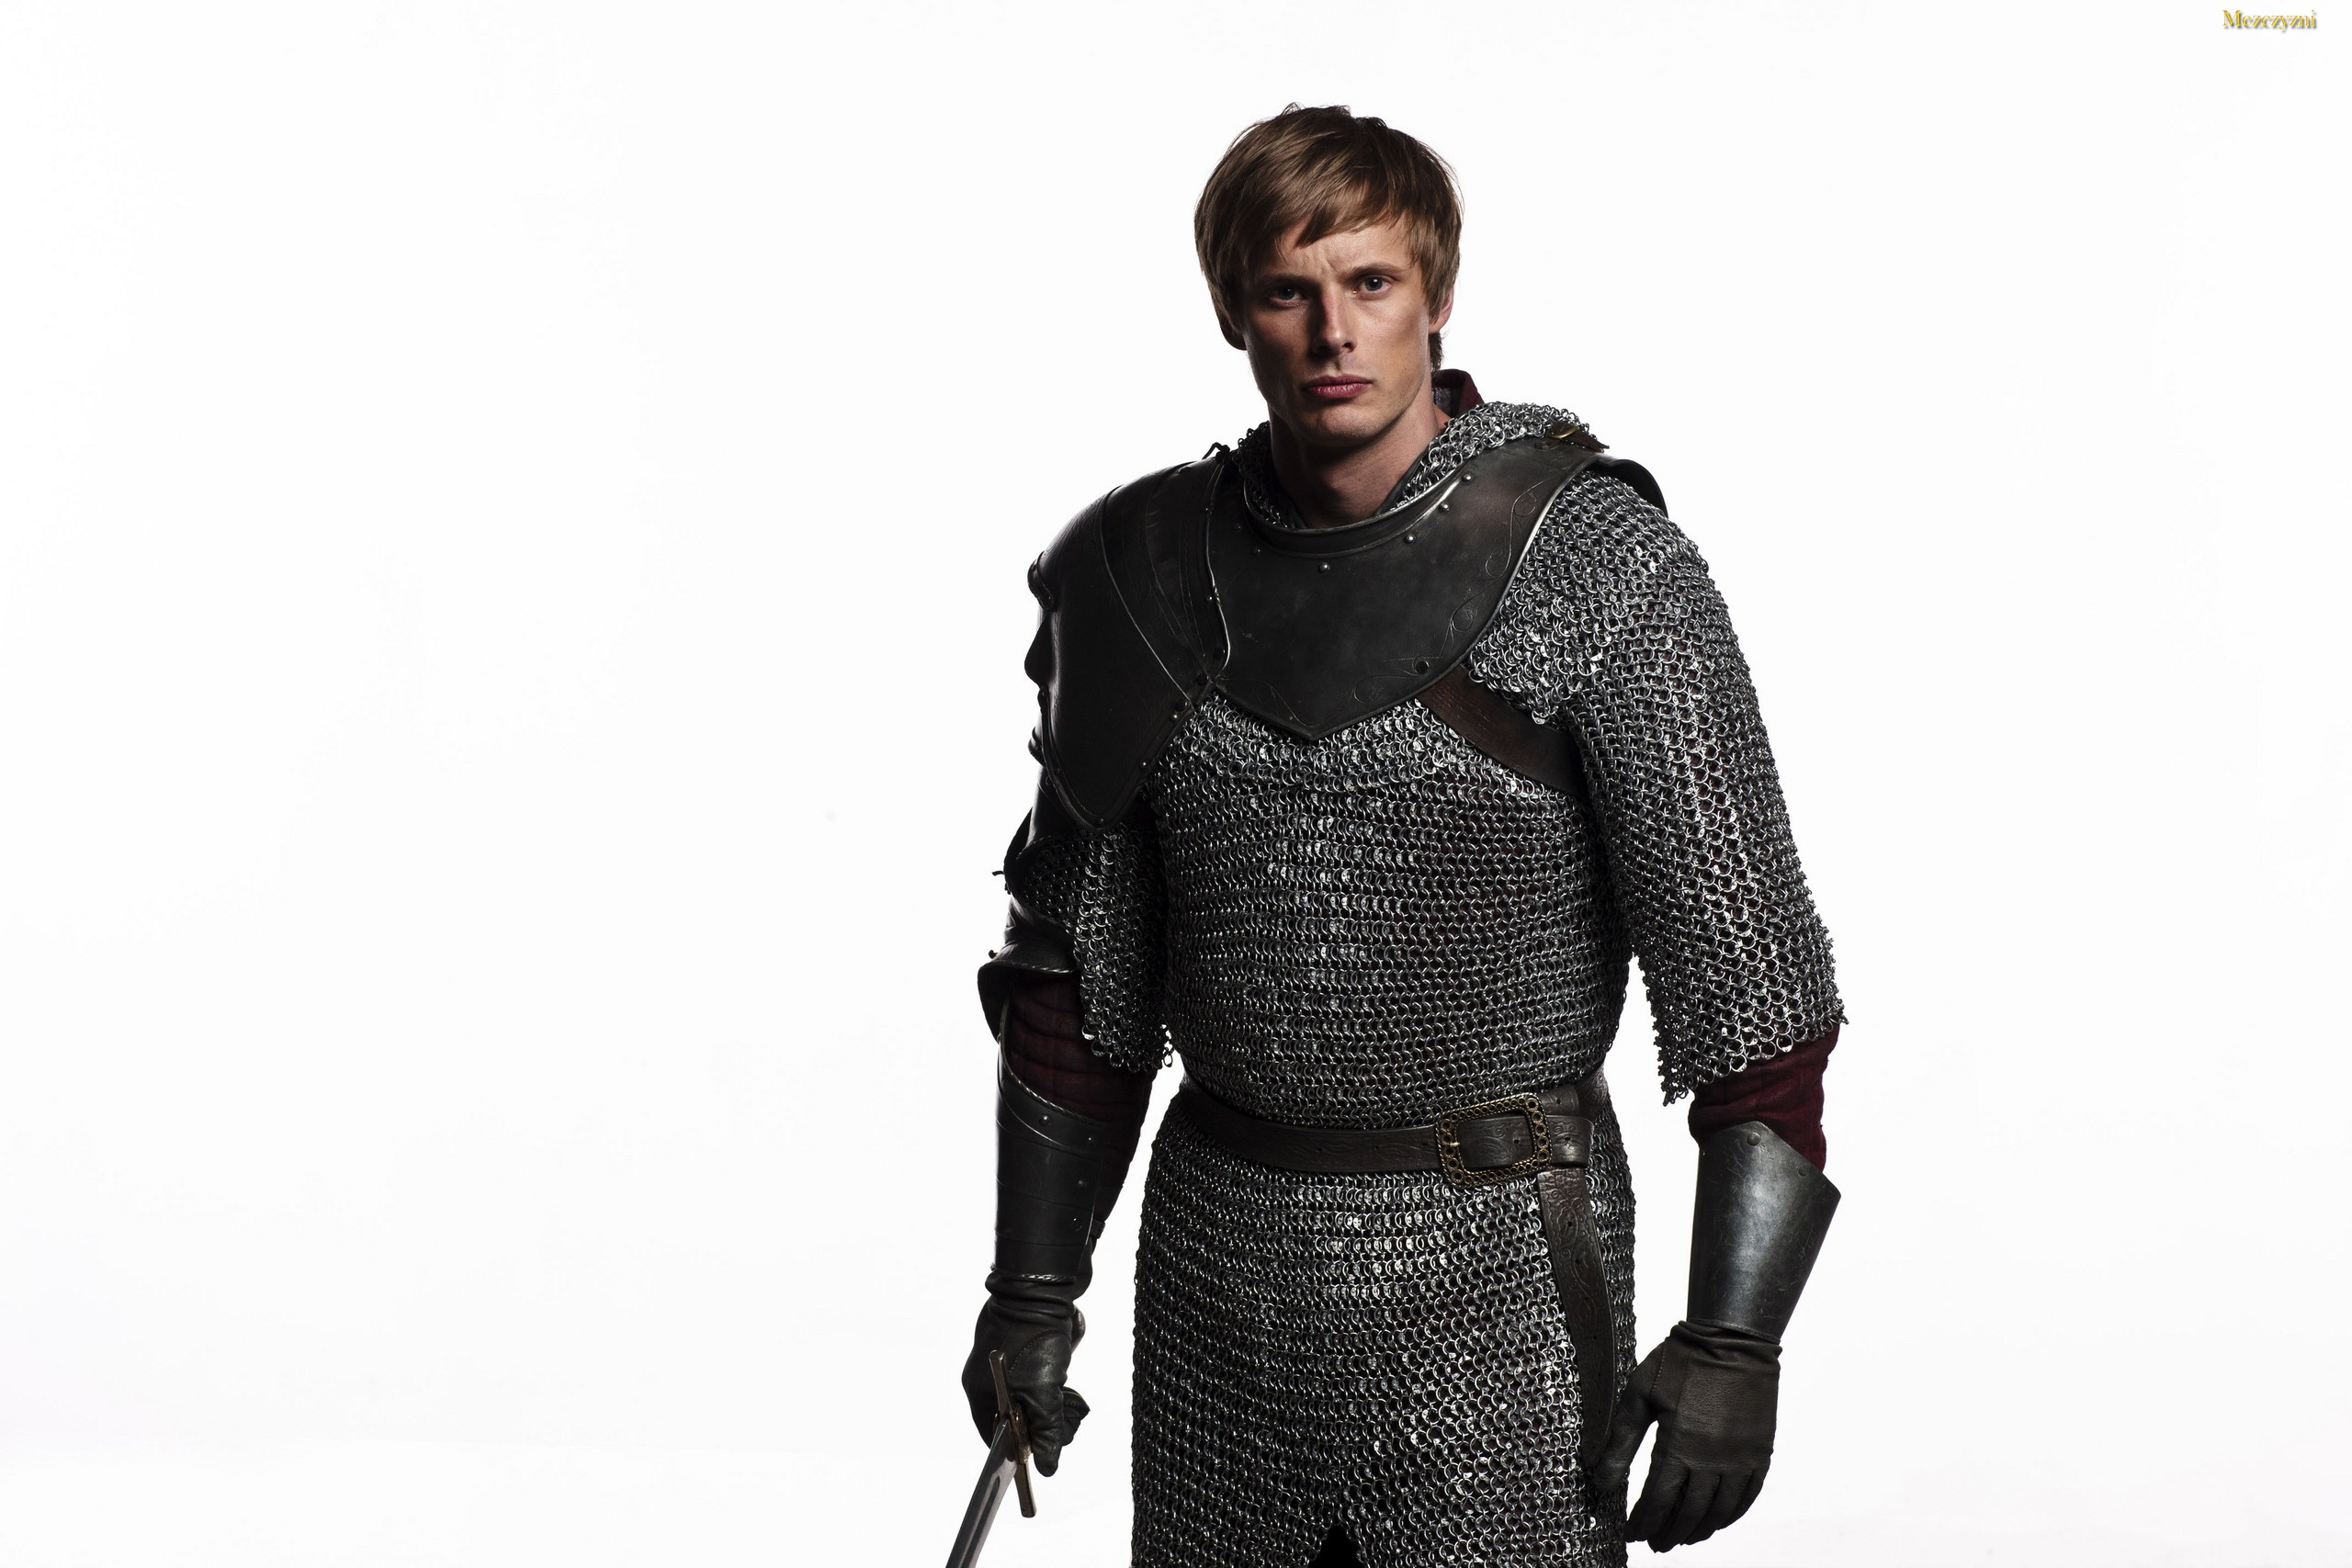 Serial, Przygody Merlina, The Adventures of Merlin, Artur - Bradley James